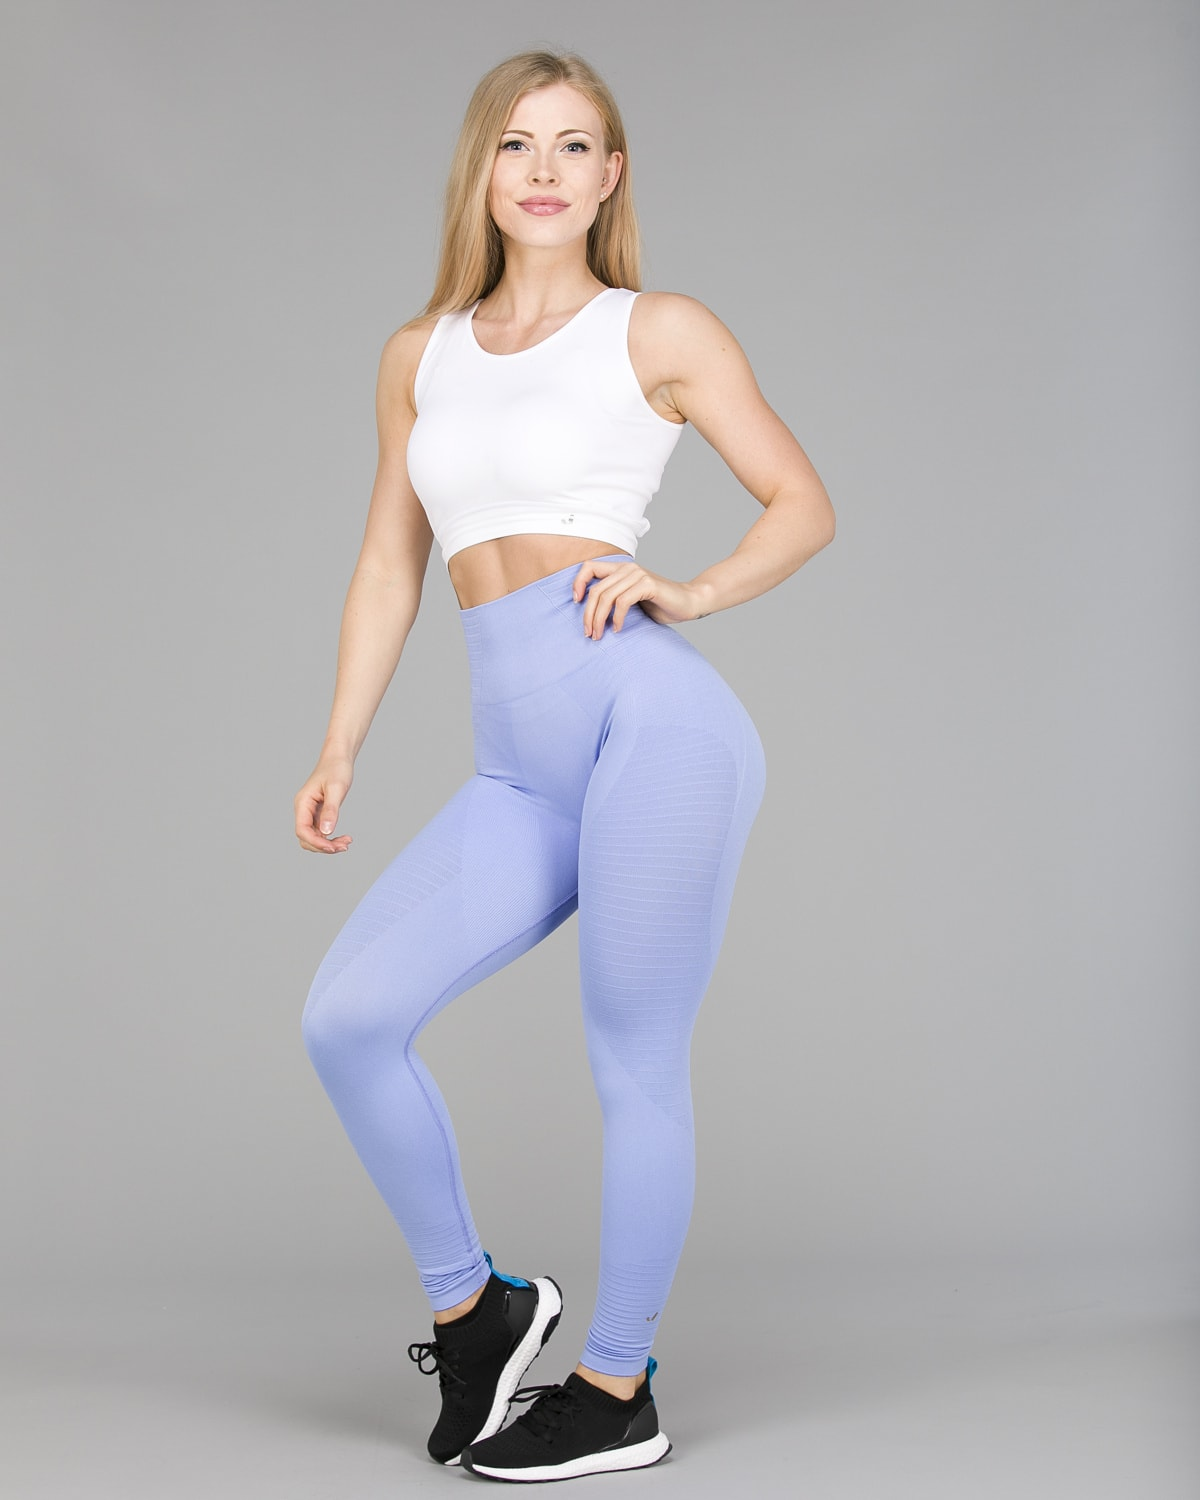 Jerf Gela 2.0 Tights Blue Pastel4